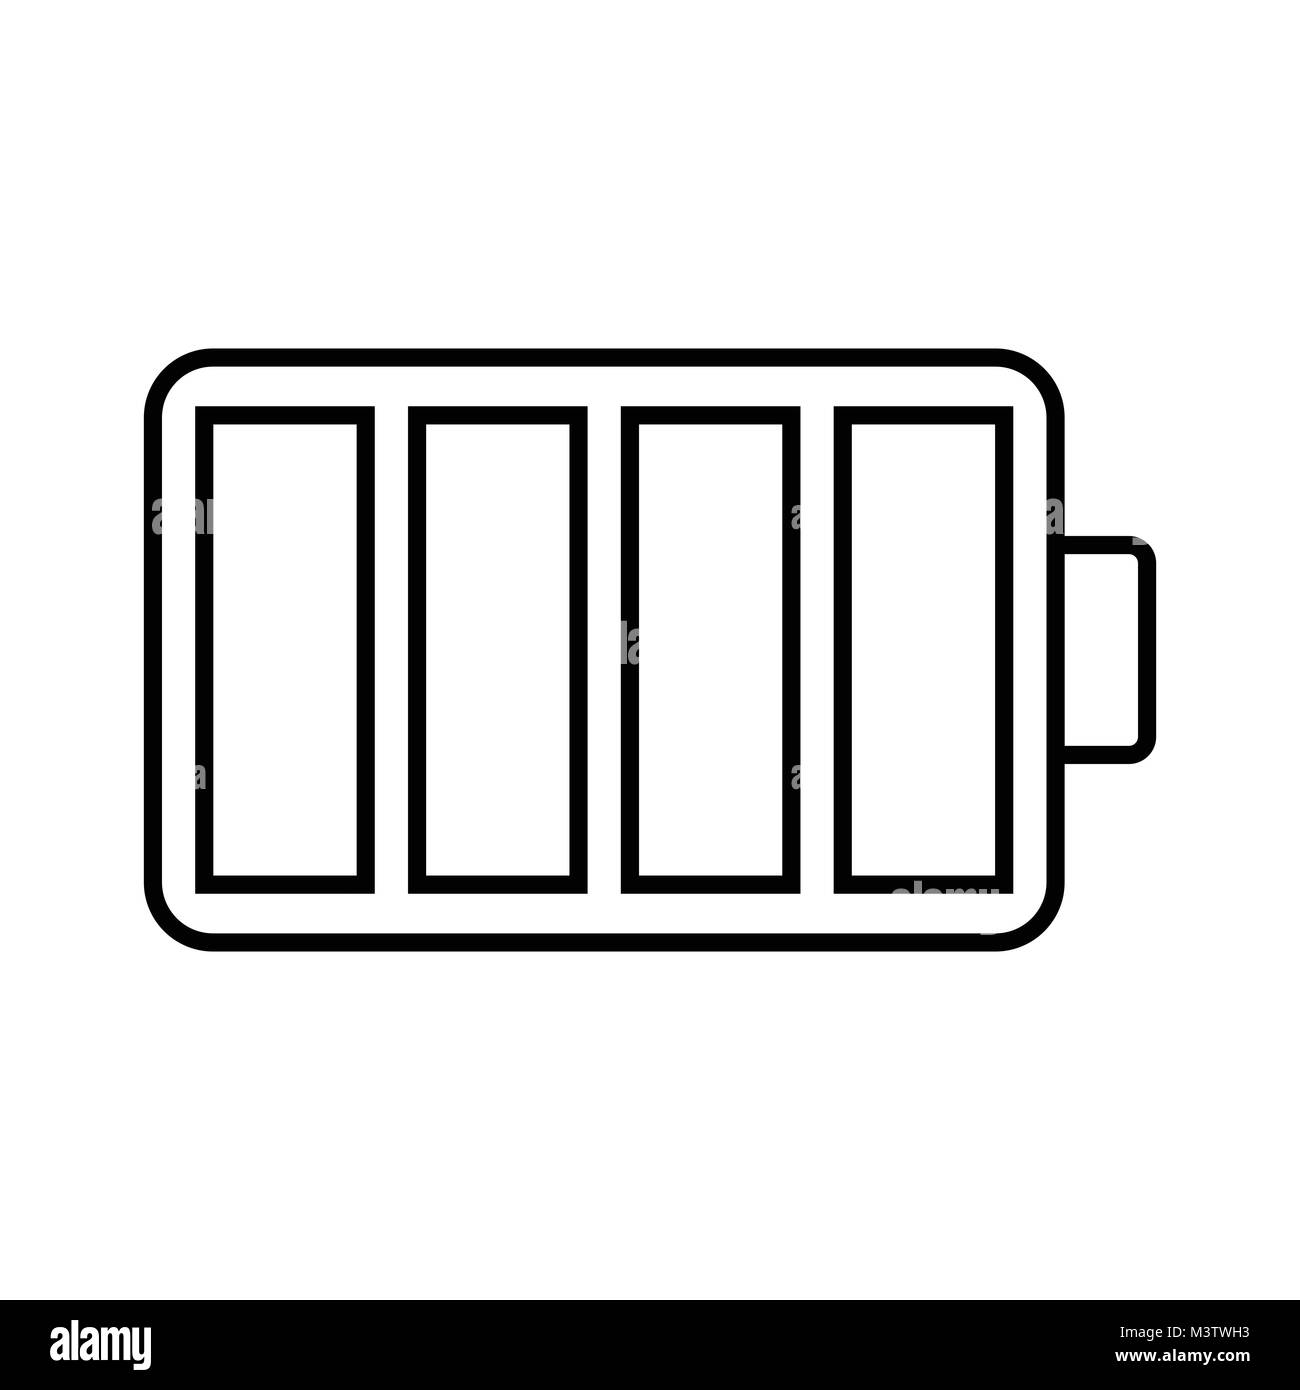 hight resolution of white battery icon